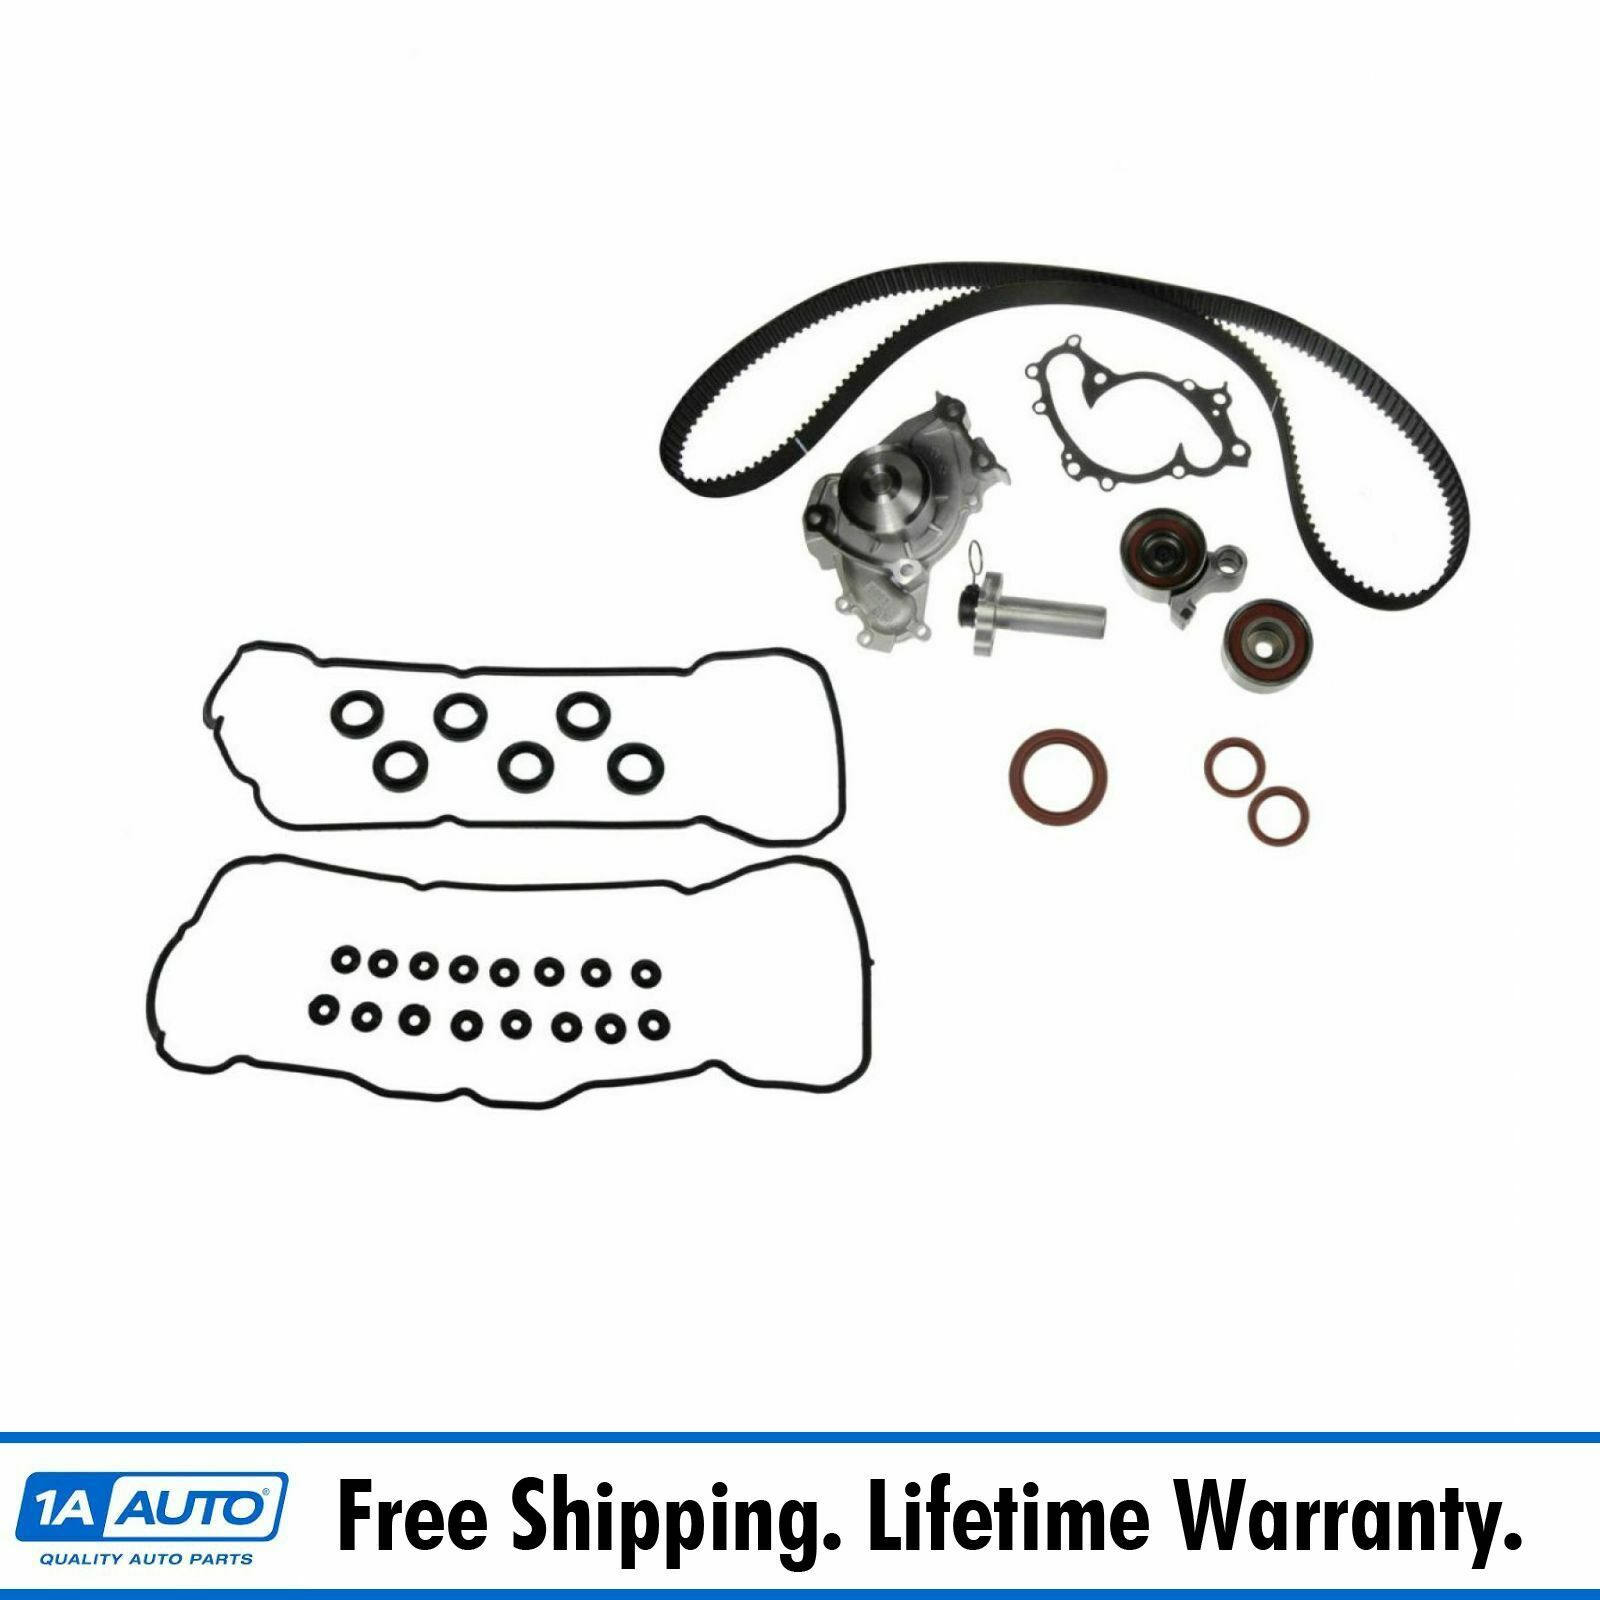 Timing Belt Water Pump Valve Cover Gasket Seals Kit Set For Lexus 1999 Honda Accord 1 Of 3only 3 Available